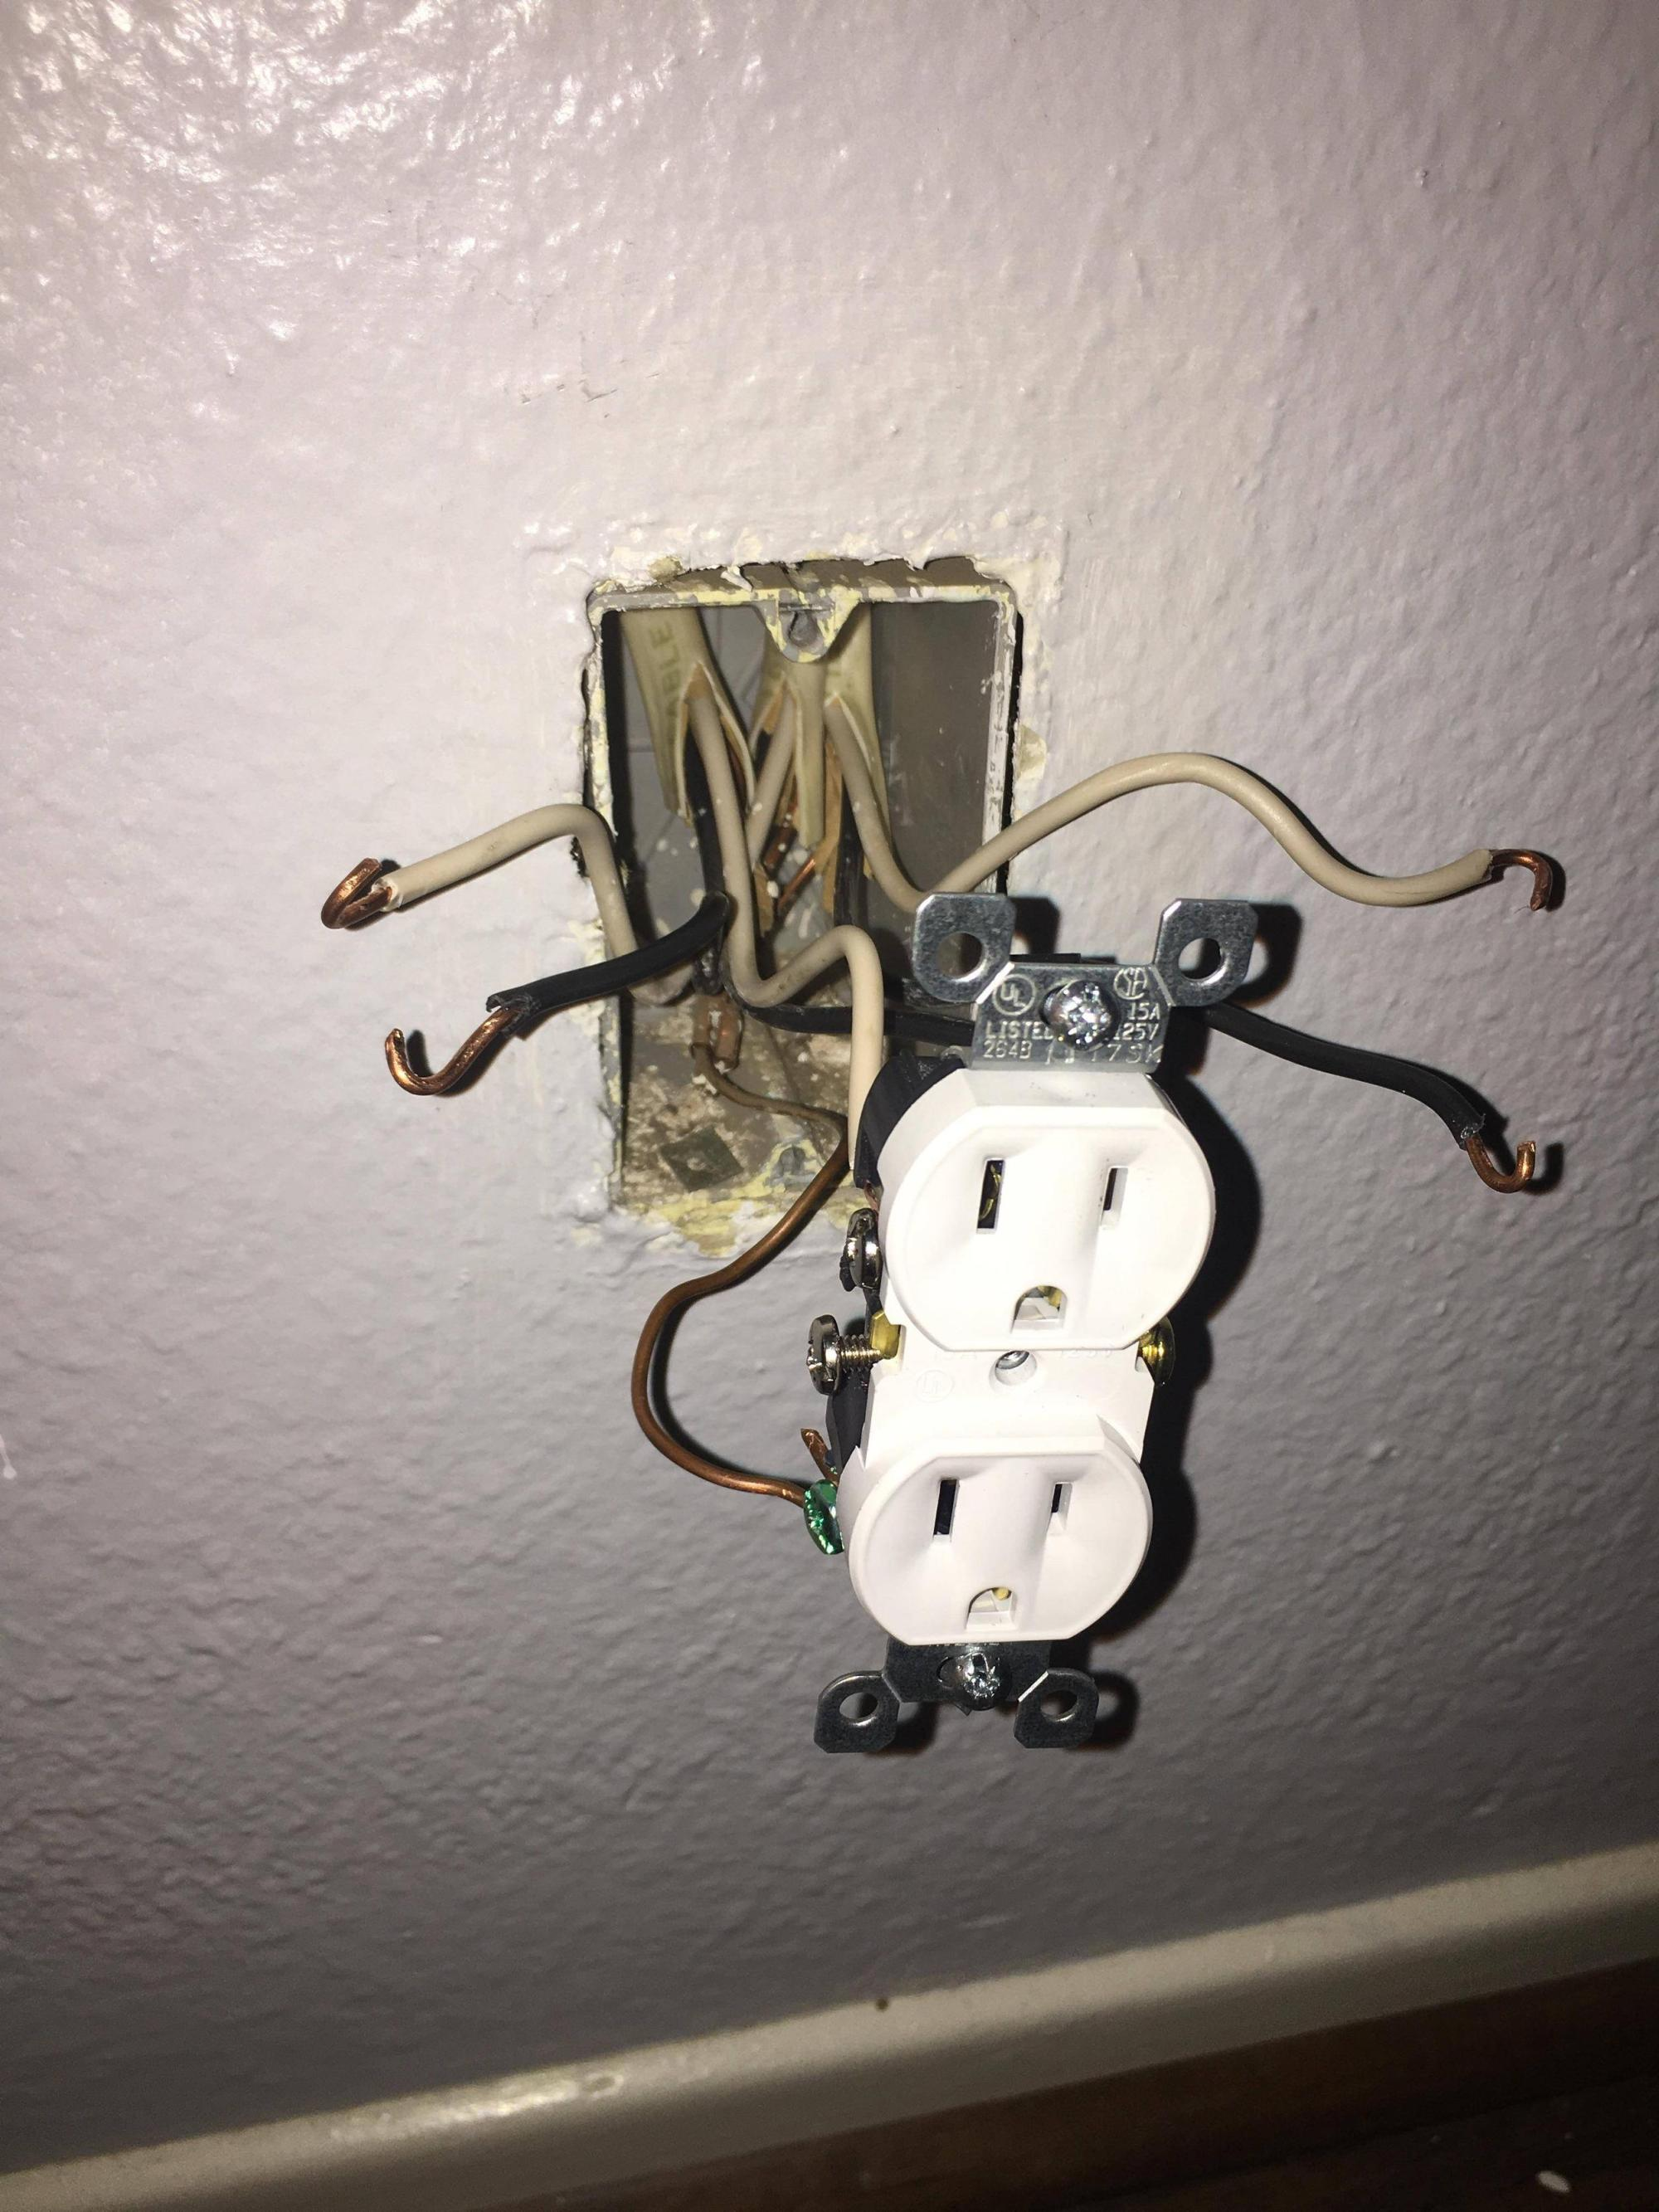 hight resolution of 3 sets of wires in outlet box lights won t turn off